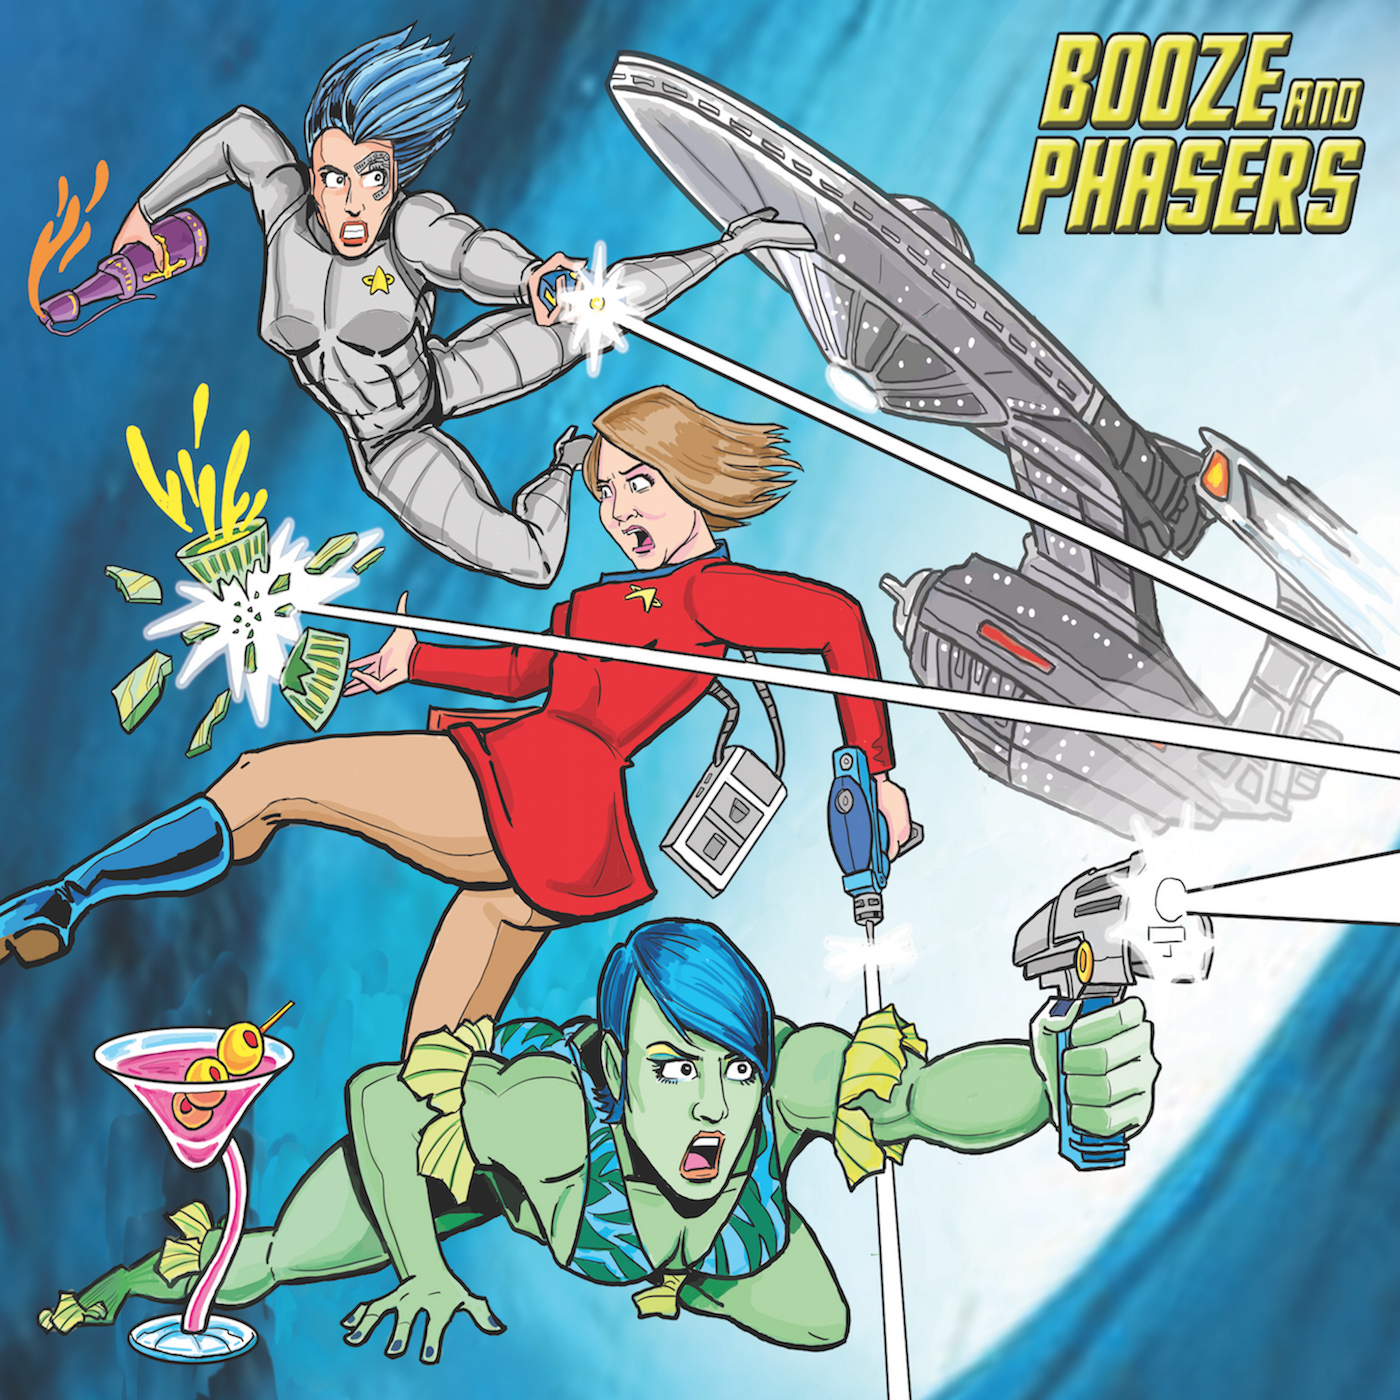 Booze and Phasers